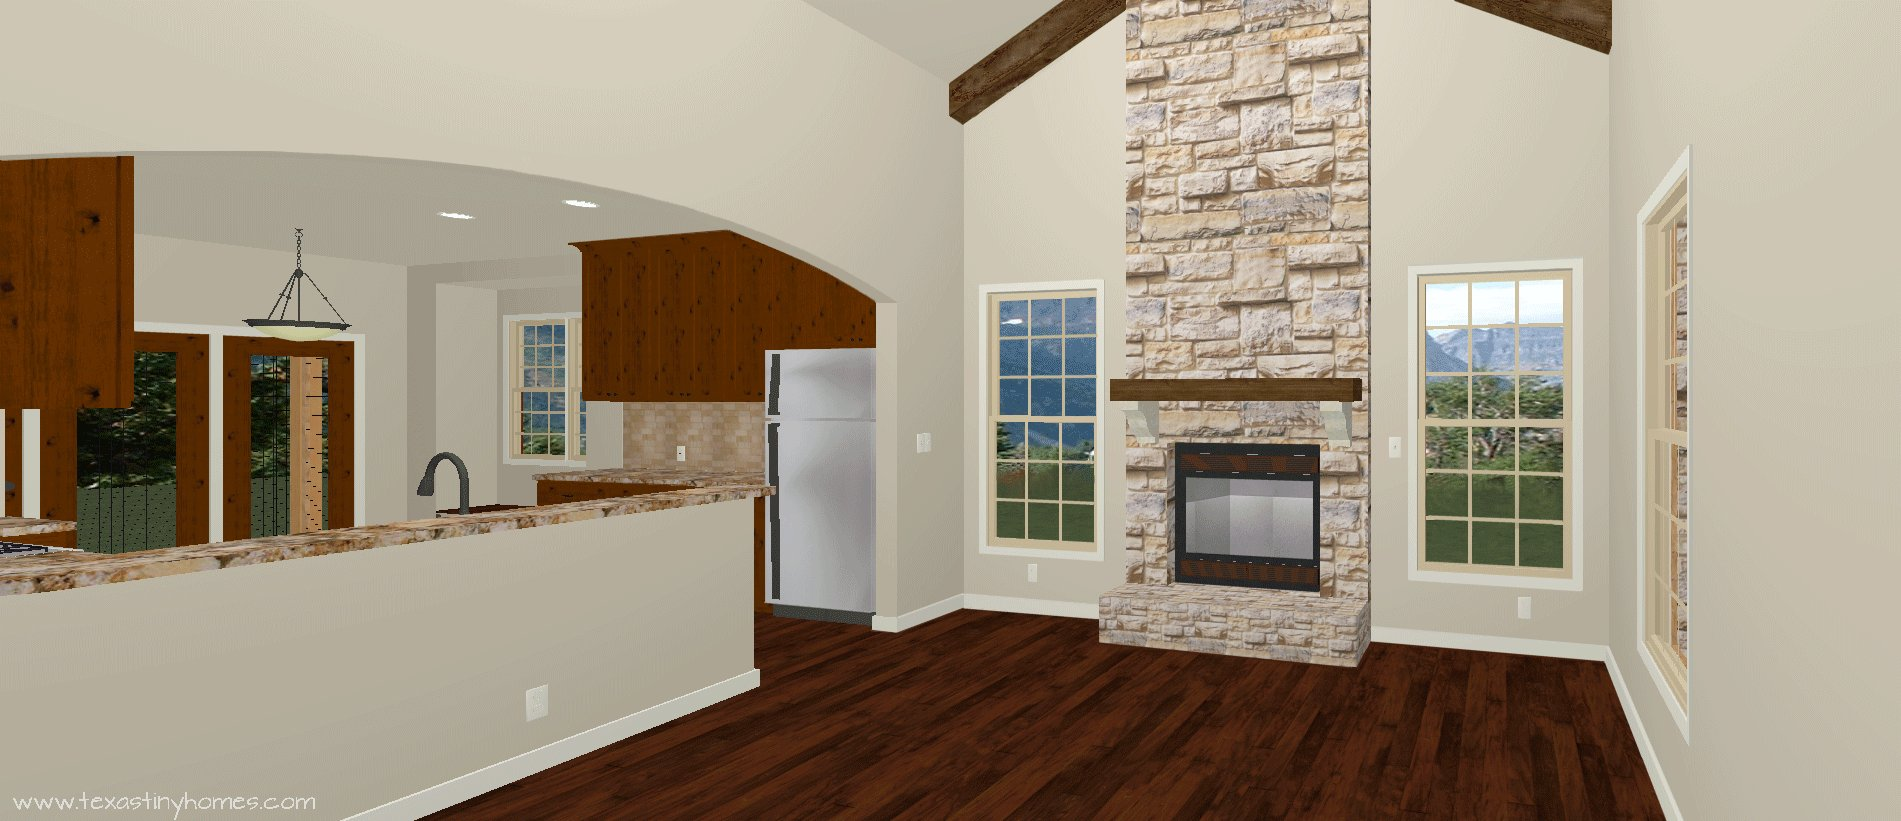 Marvelous Texas Tiny Homes Designs Builds And Markets House Plans Largest Home Design Picture Inspirations Pitcheantrous